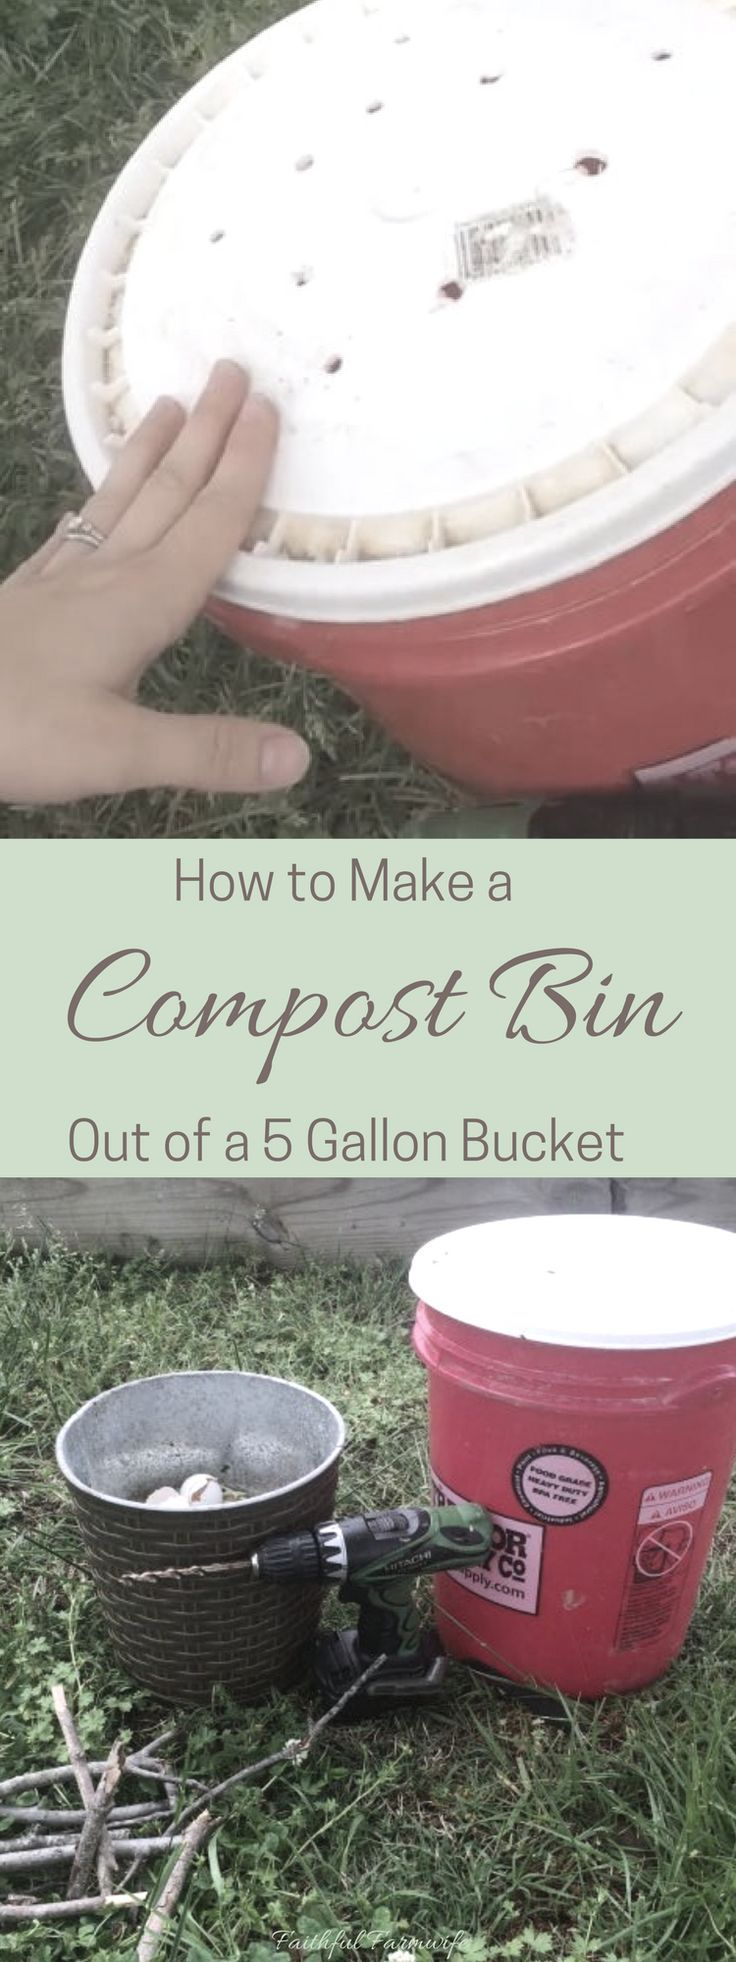 Composting is a great way to dispose of food scraps & fertilize your garden for free! Learn how to make a simple compost bin with a 5 gallon bucket.